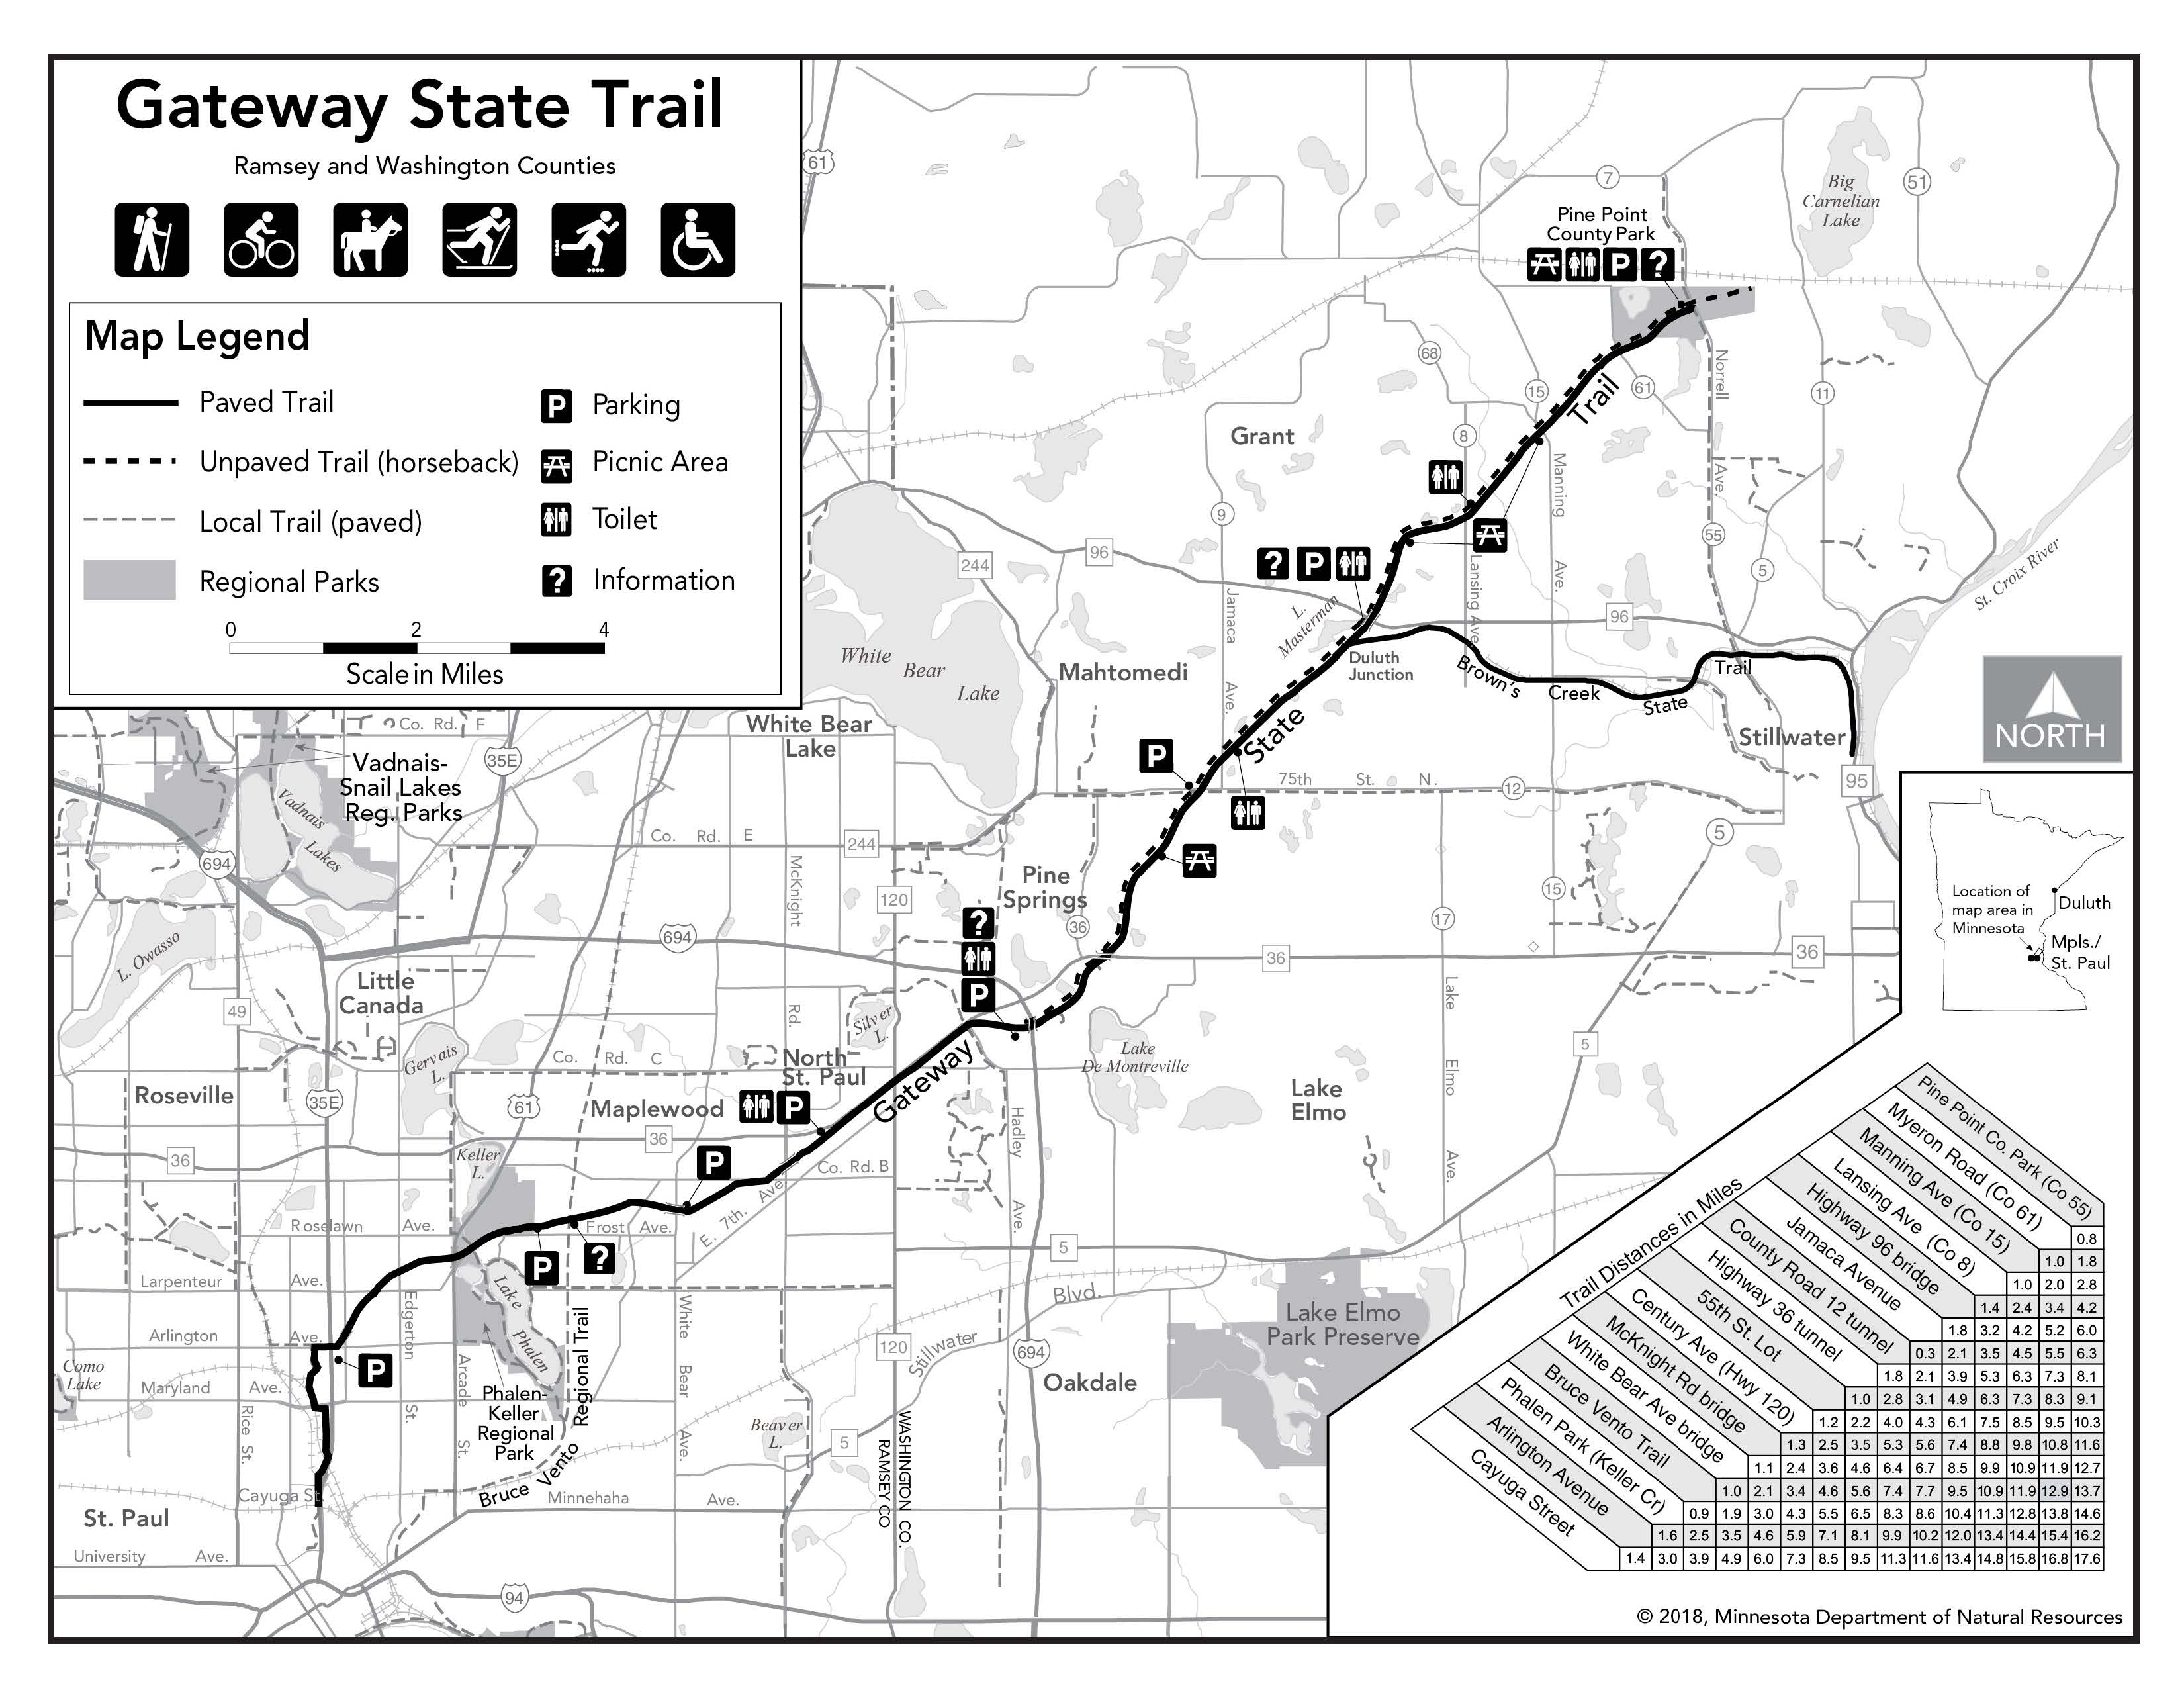 Map of Gateway State Trail by MnDNR